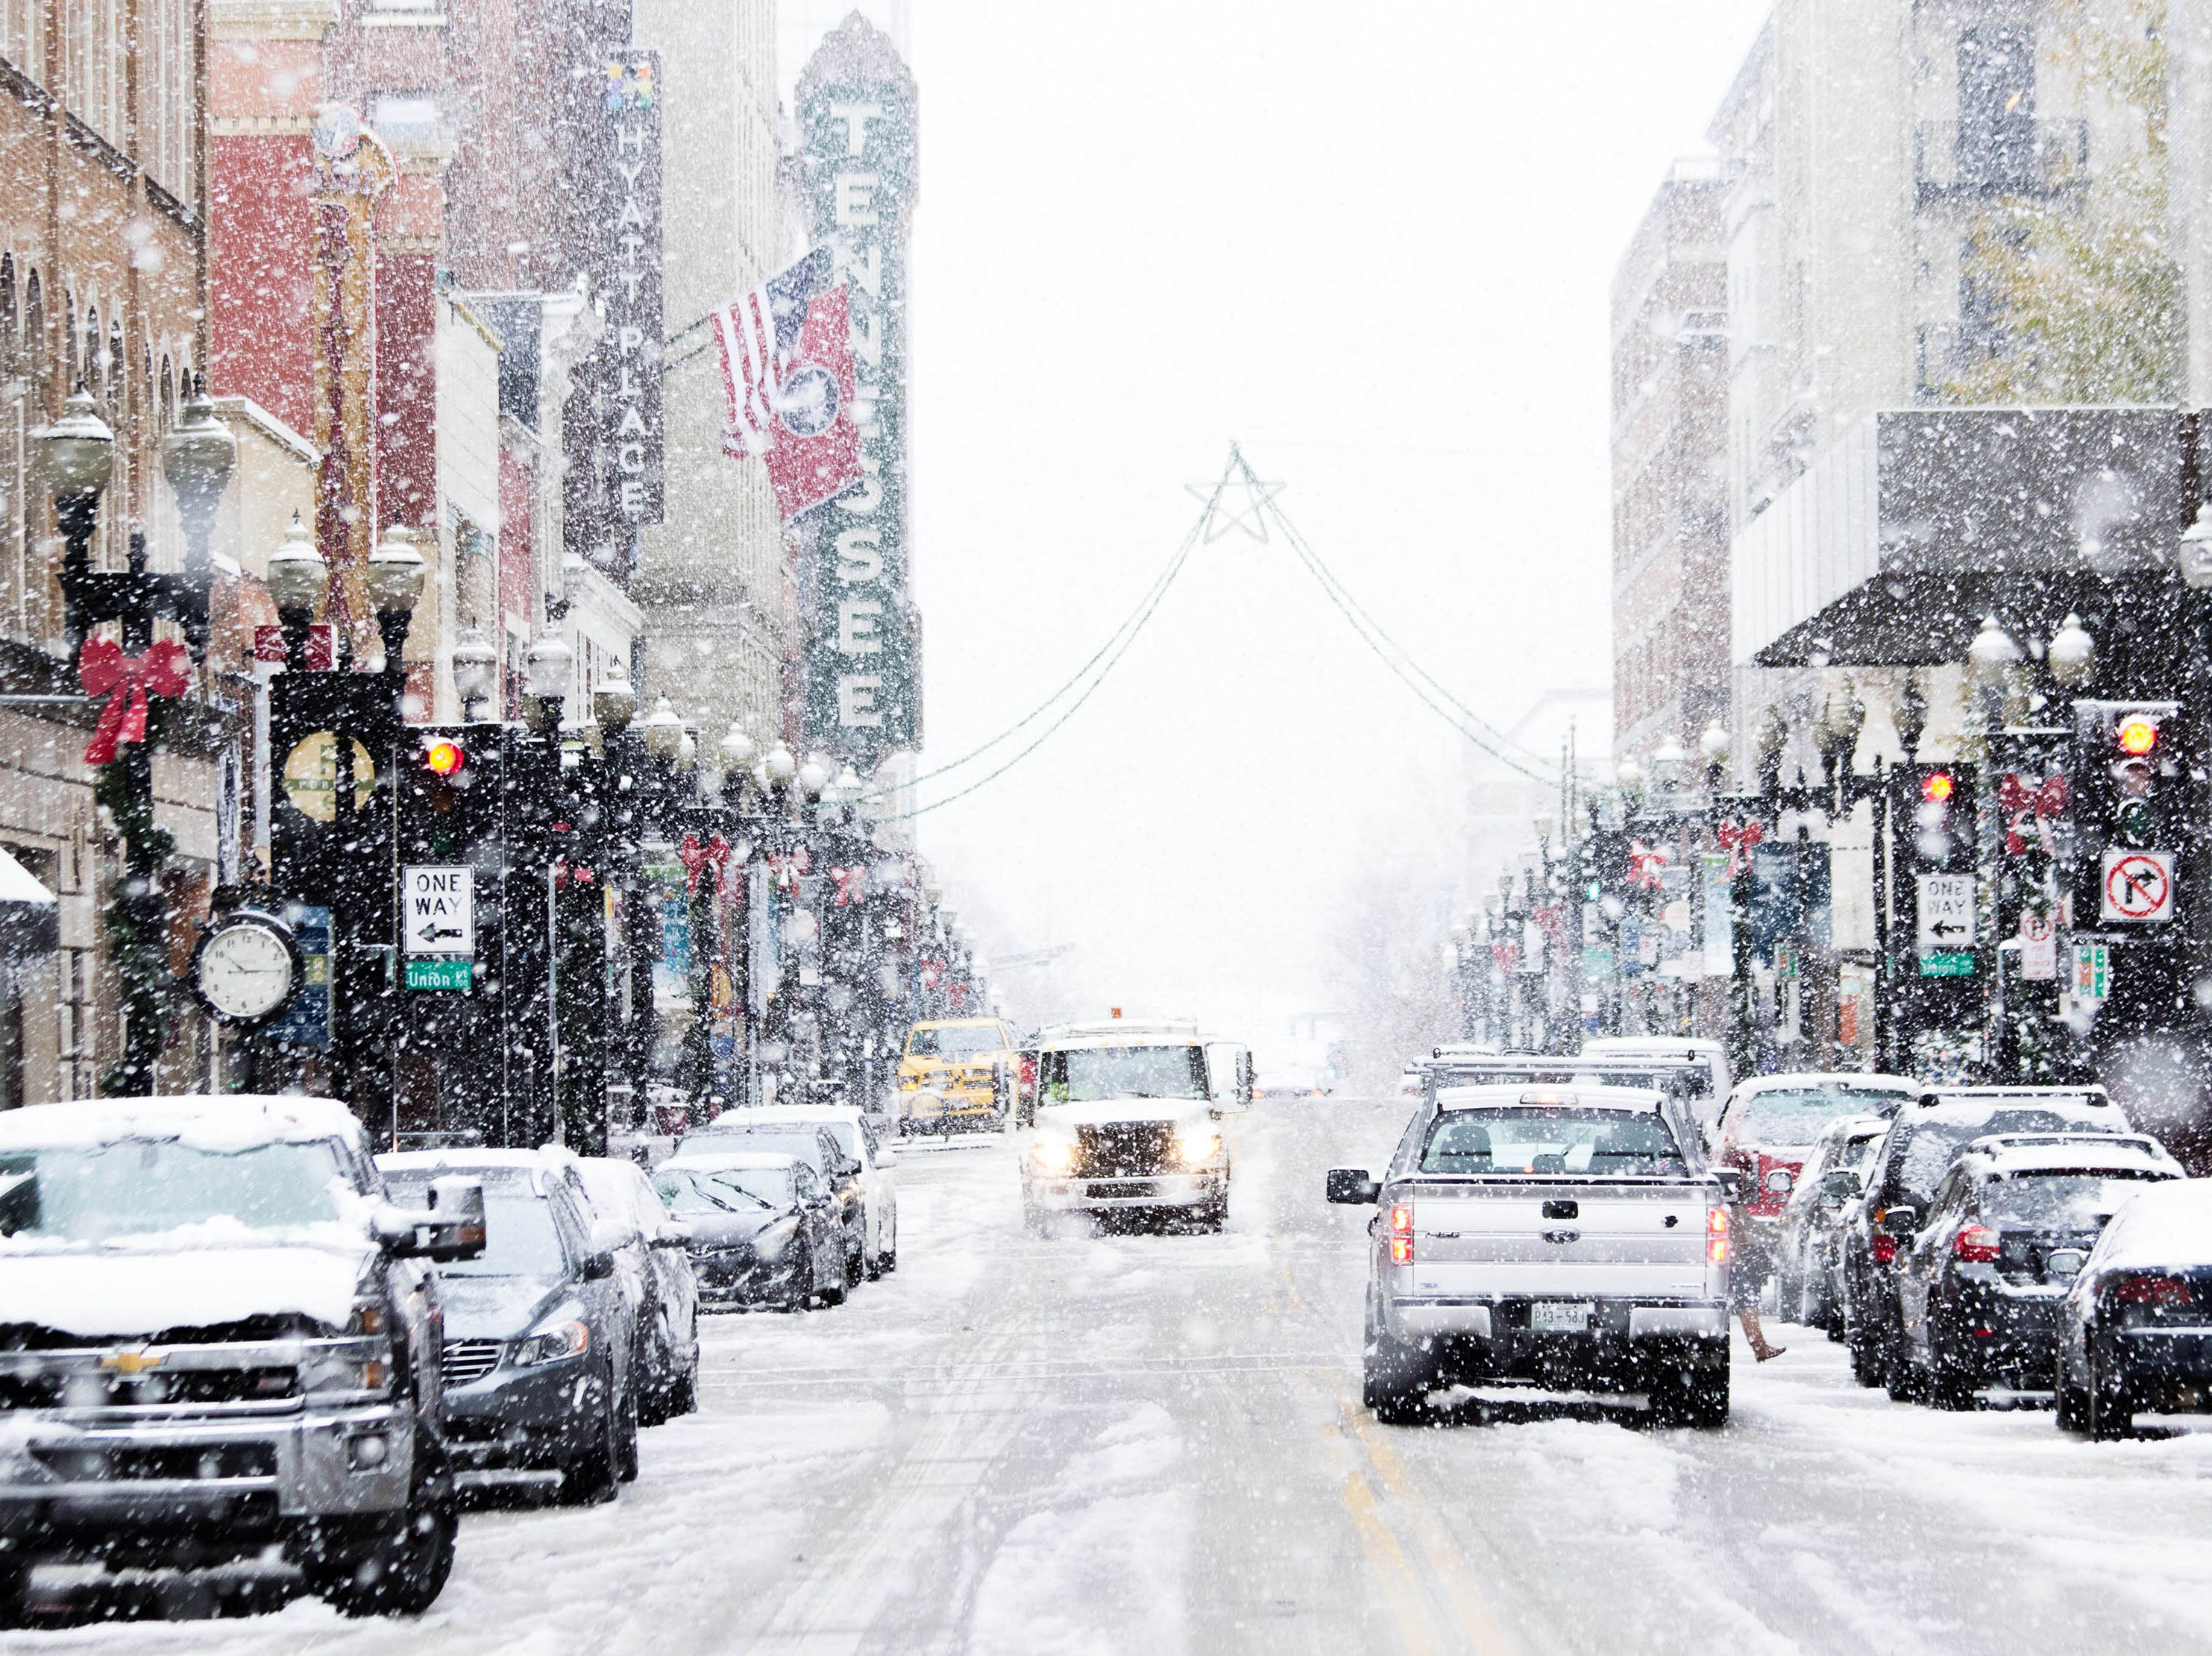 Snow flurries fall on Gay St. on Dec. 9, 2018 as Knoxville, Tenn. receives the season's first snow fall.